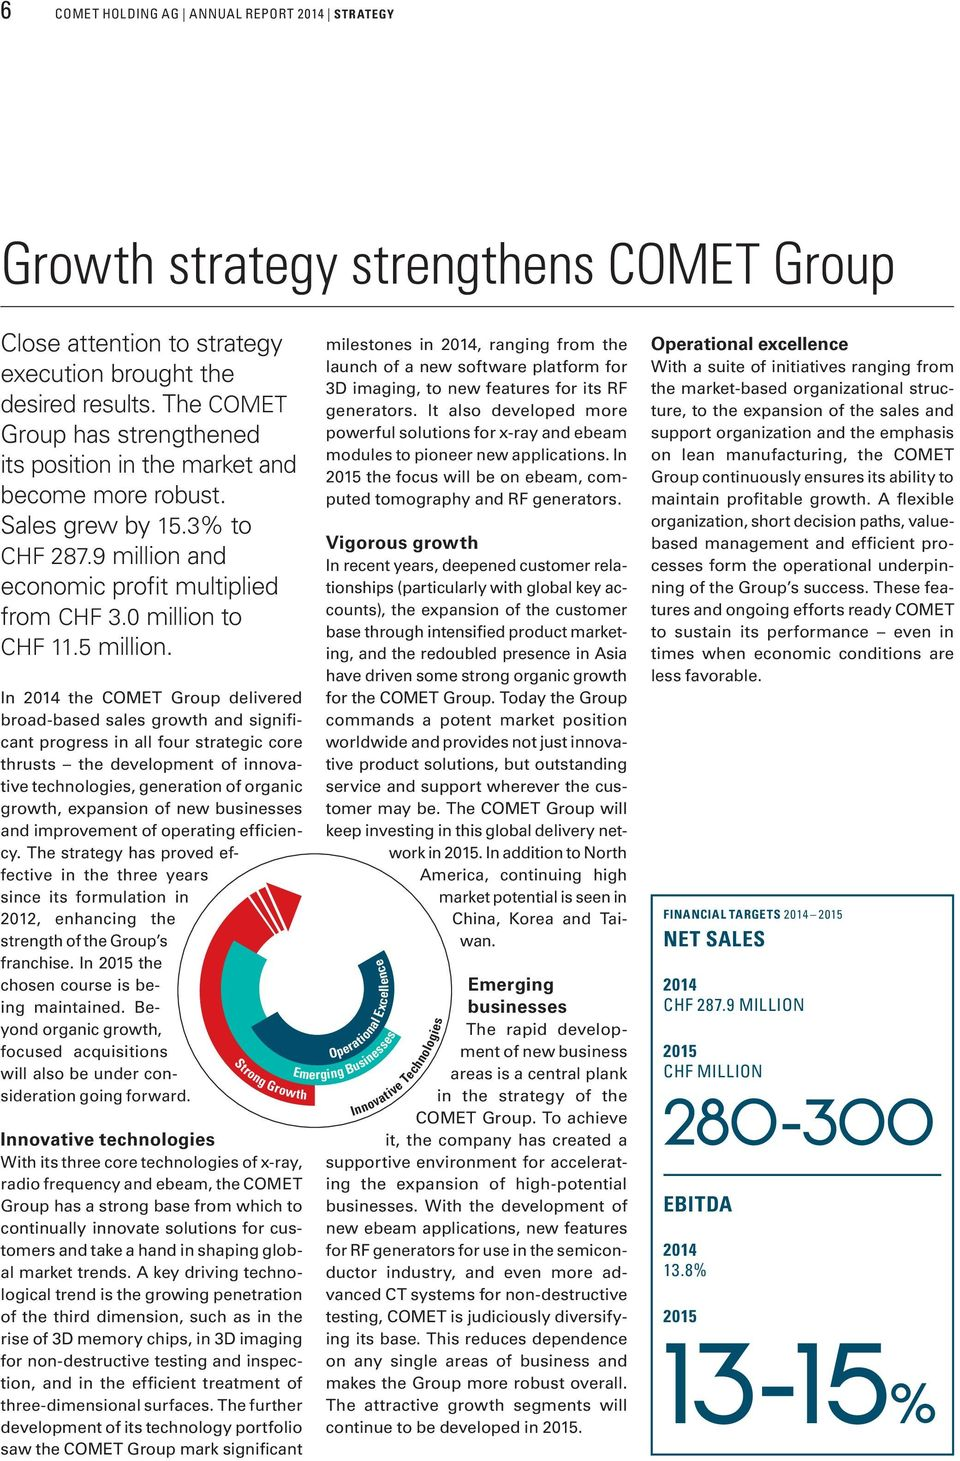 In 2014 the COMET Group delivered broad-based sales growth and significant progress in all four strategic core thrusts the development of innovative technologies, generation of organic growth,